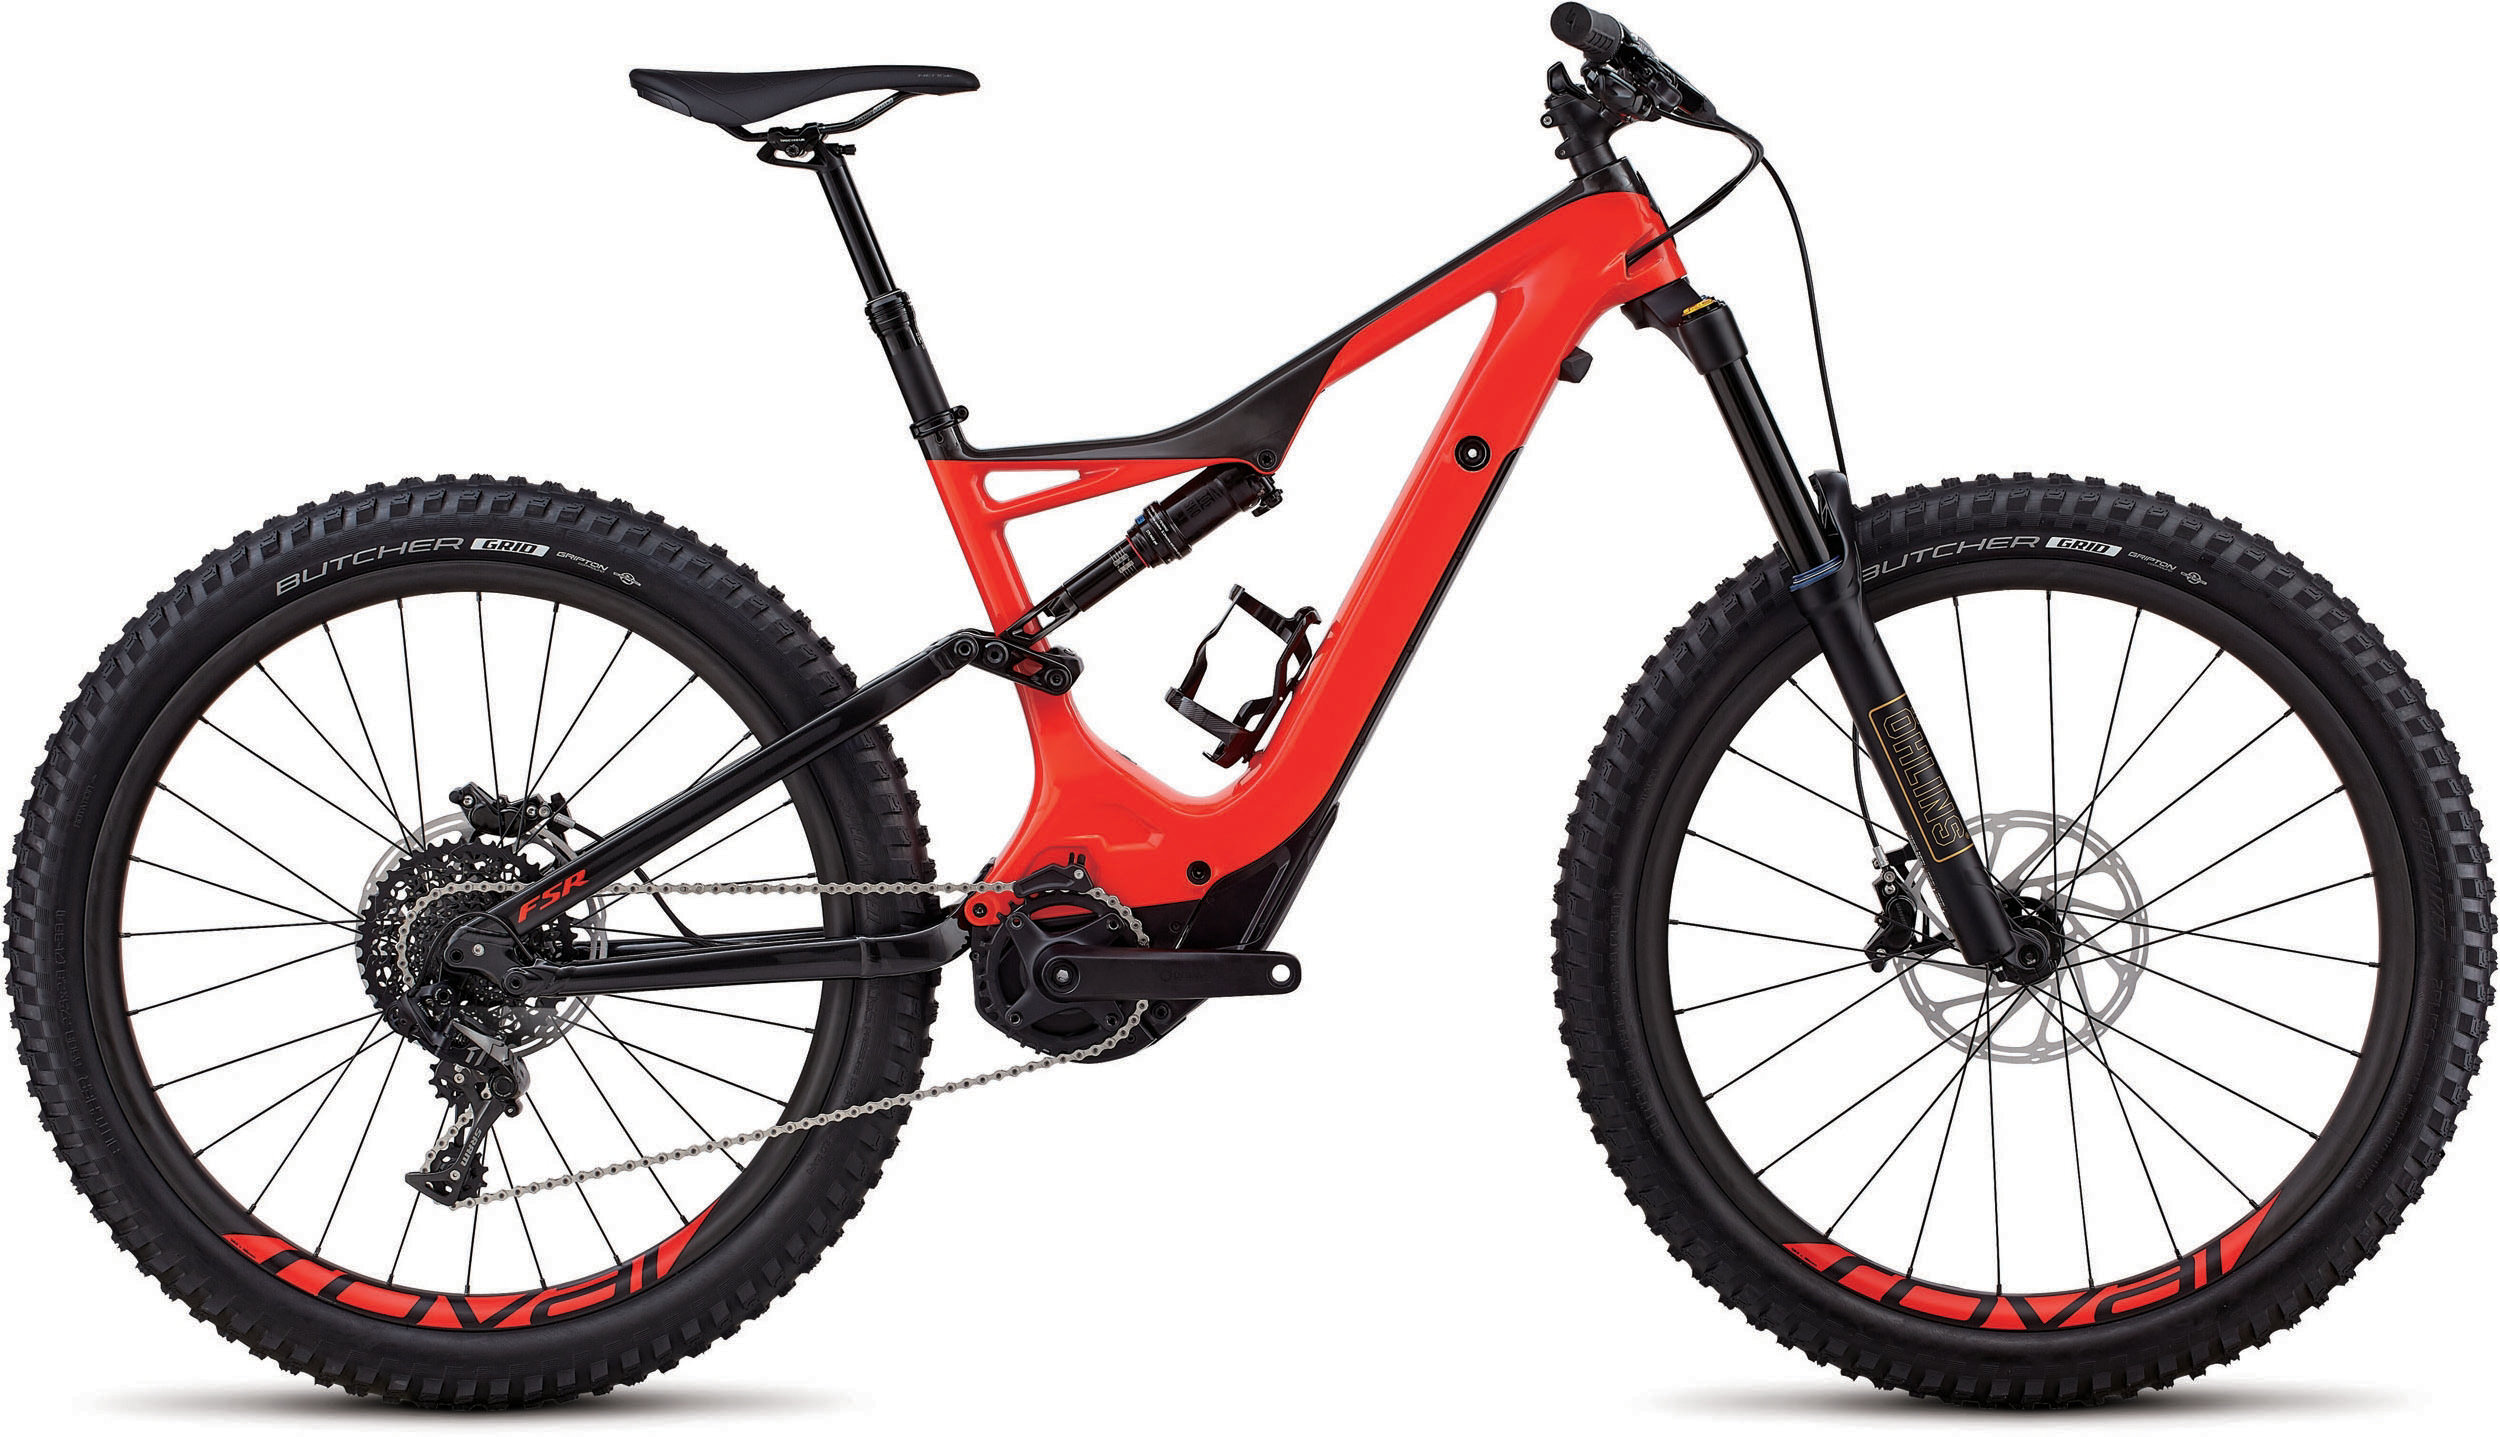 Specialized Men´s Turbo Levo FSR Expert Carbon 6Fattie/29 Gloss Rocket Red / Carbon S - schneider-sports